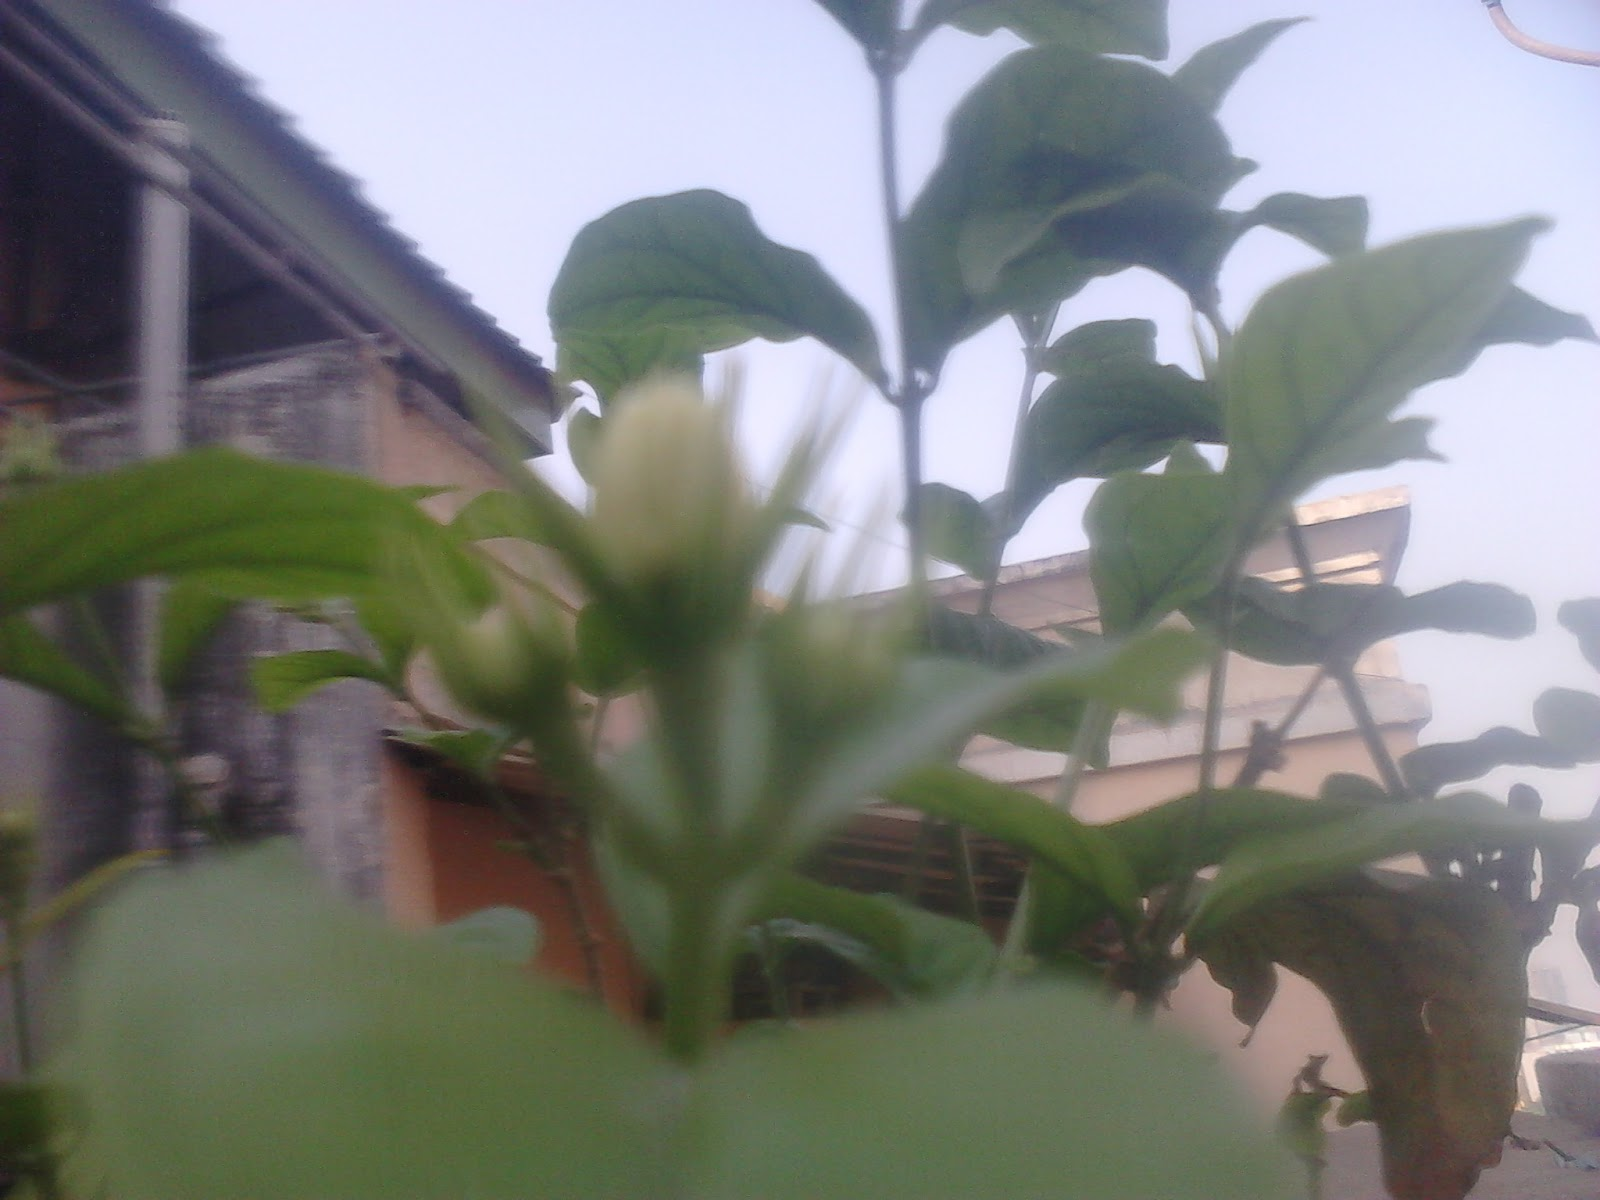 Garden Care Simplified Simple Flowering Tips For Mogra Flower Plant